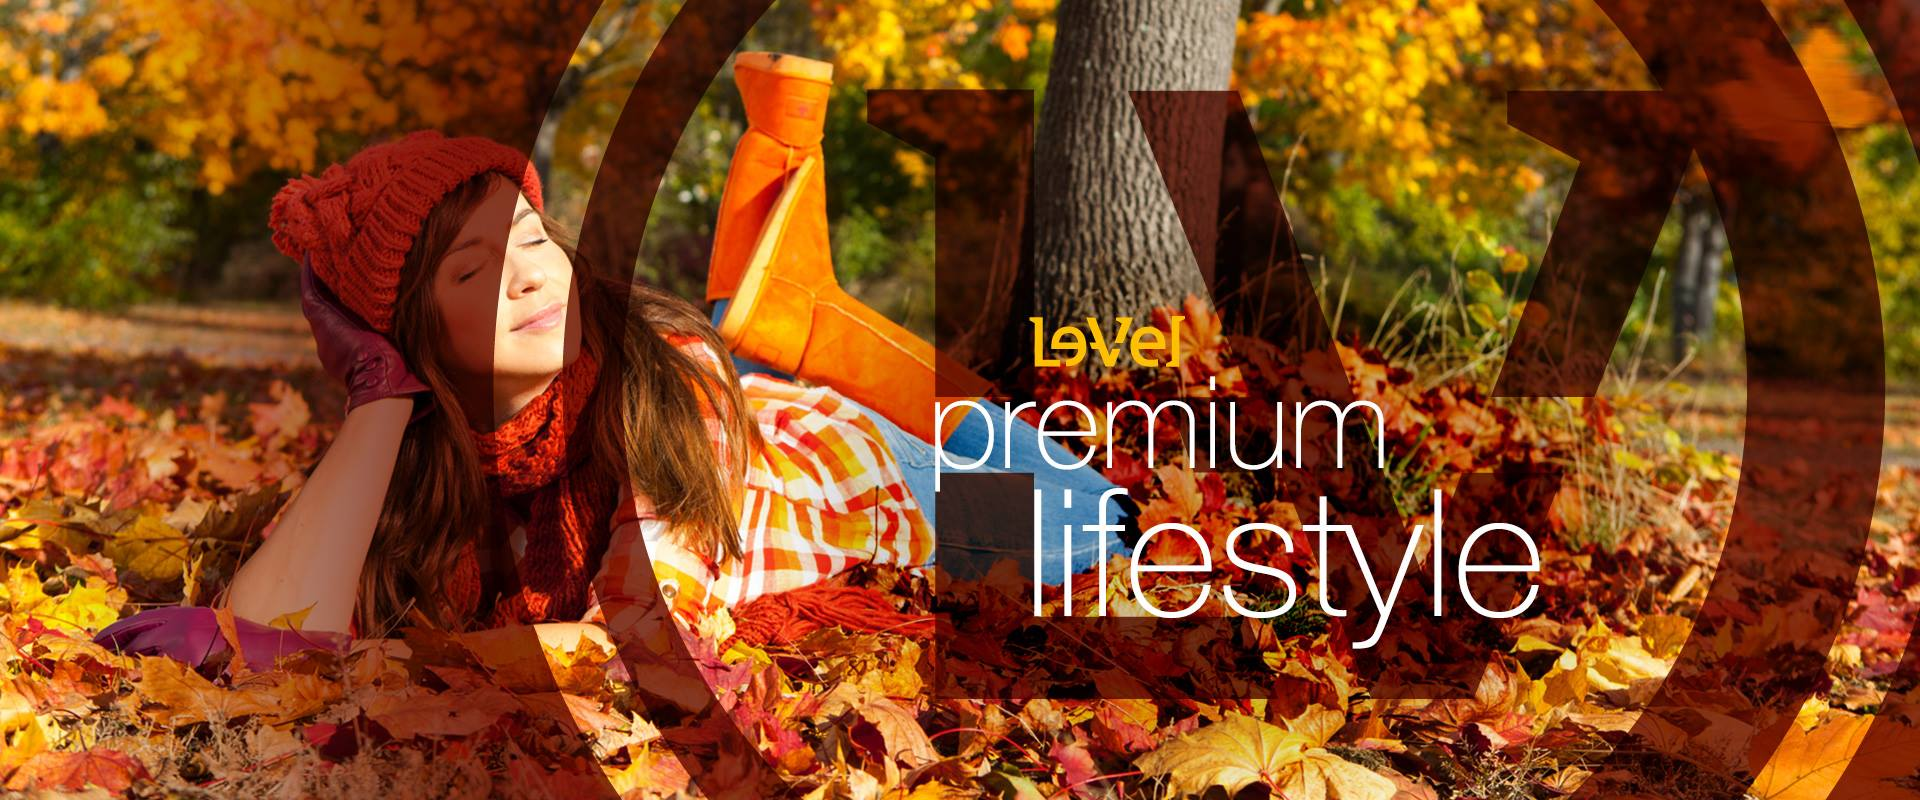 THRIVE Premium Lifestyle Mix: Apple Pie